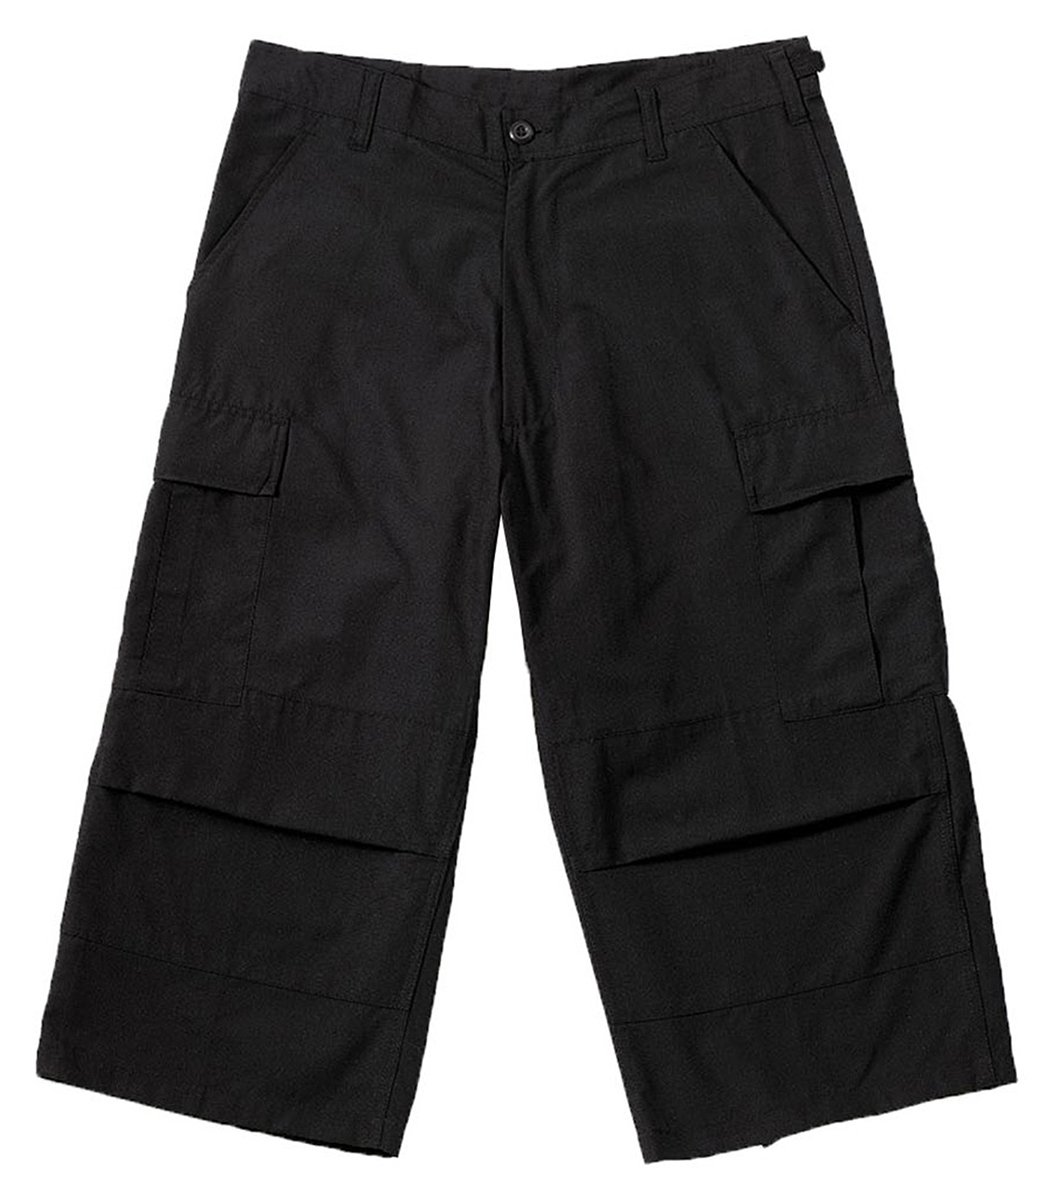 Rothco Capri Pants (Black) RSR Group Inc 613902835139